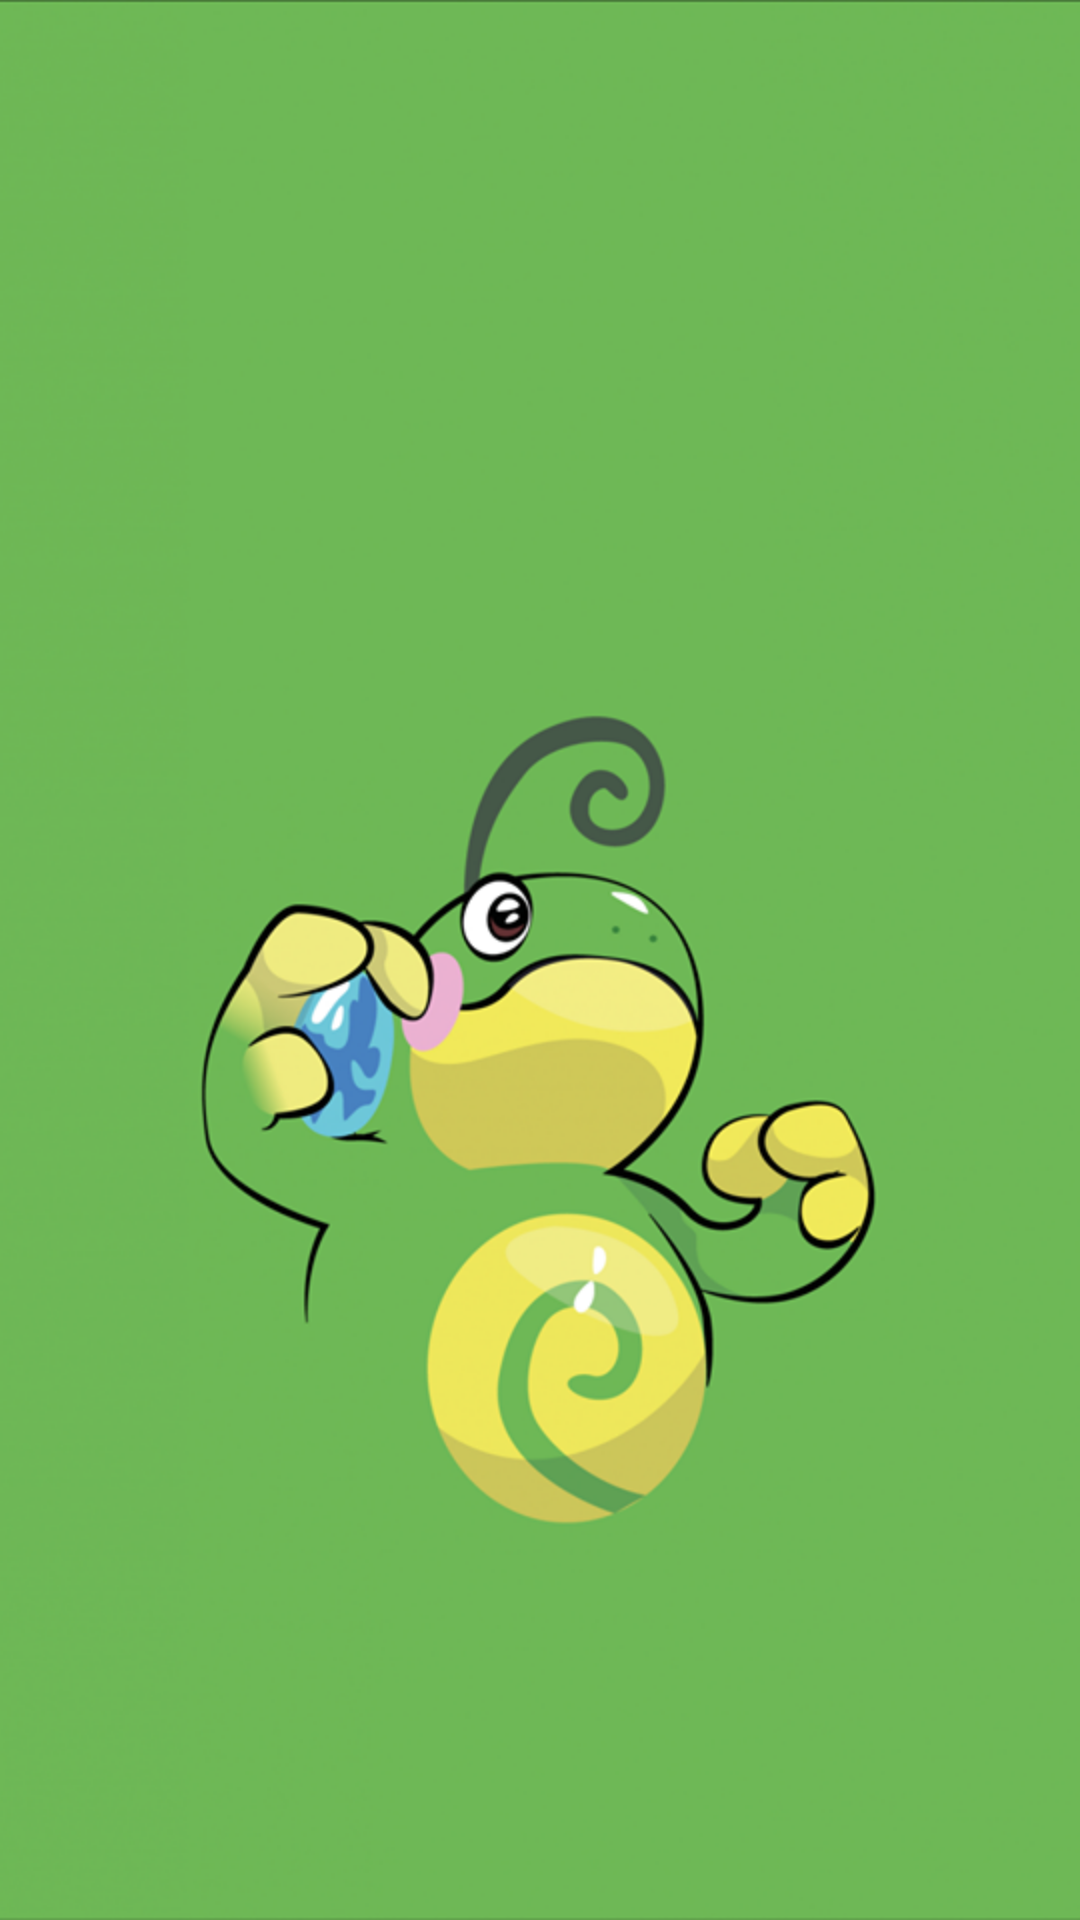 Download Politoed 1080 x 1920 Wallpapers – 4678888 – POKEMON …